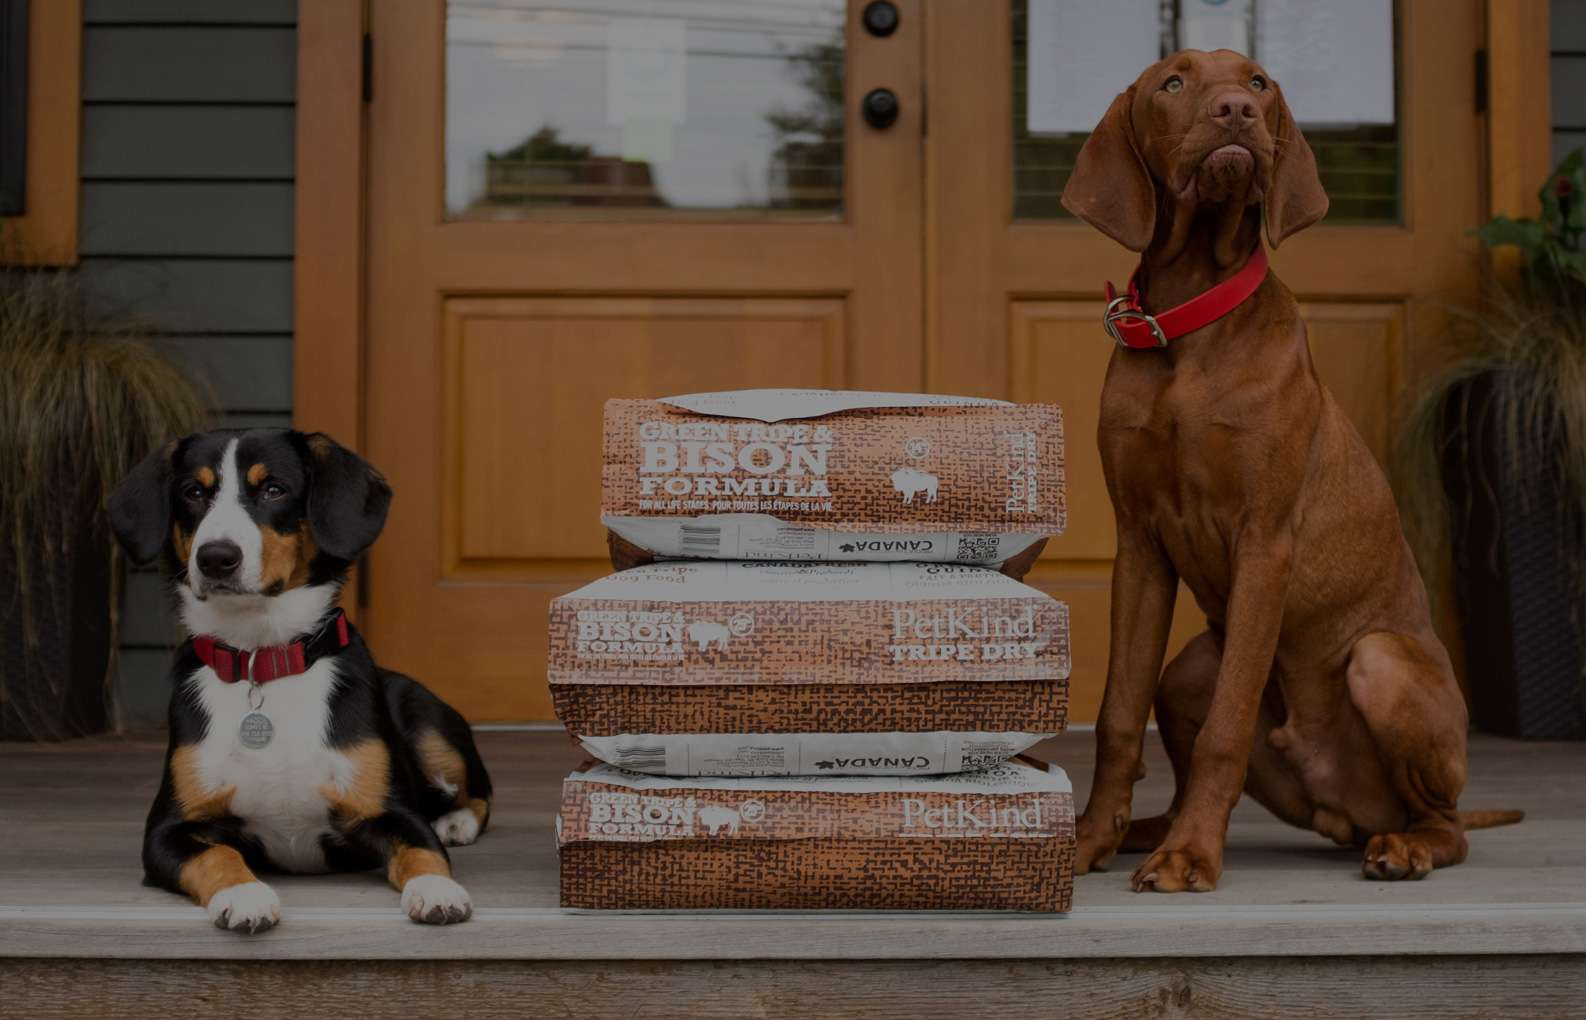 Vizsla and Entlebucher Mountain Dog sitting on a porch/deck with stacked bags of Tripe Dry Bison Formula.